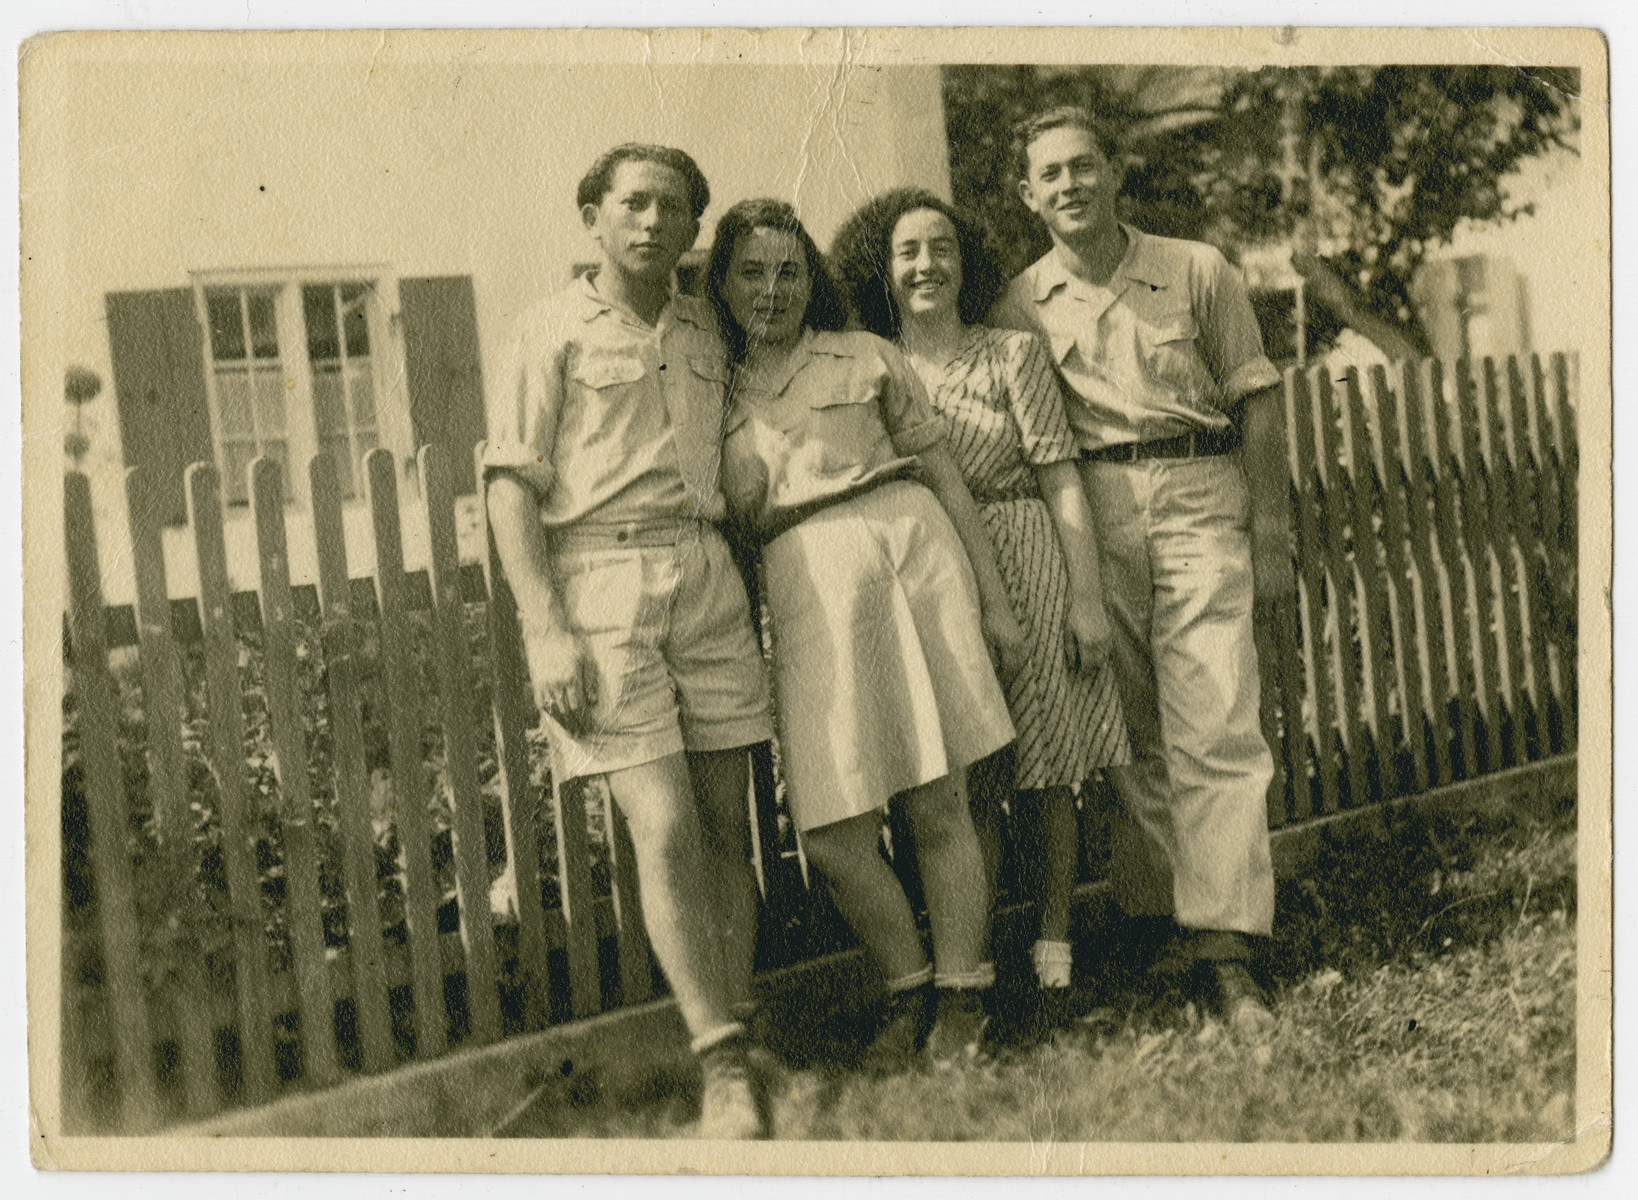 Four young people pose in the Holzhausen kibbutz hachshara.  From left to right are Tzvi, Rifka Weiss and Rochel (Rachel).  The man on the right is not identified.